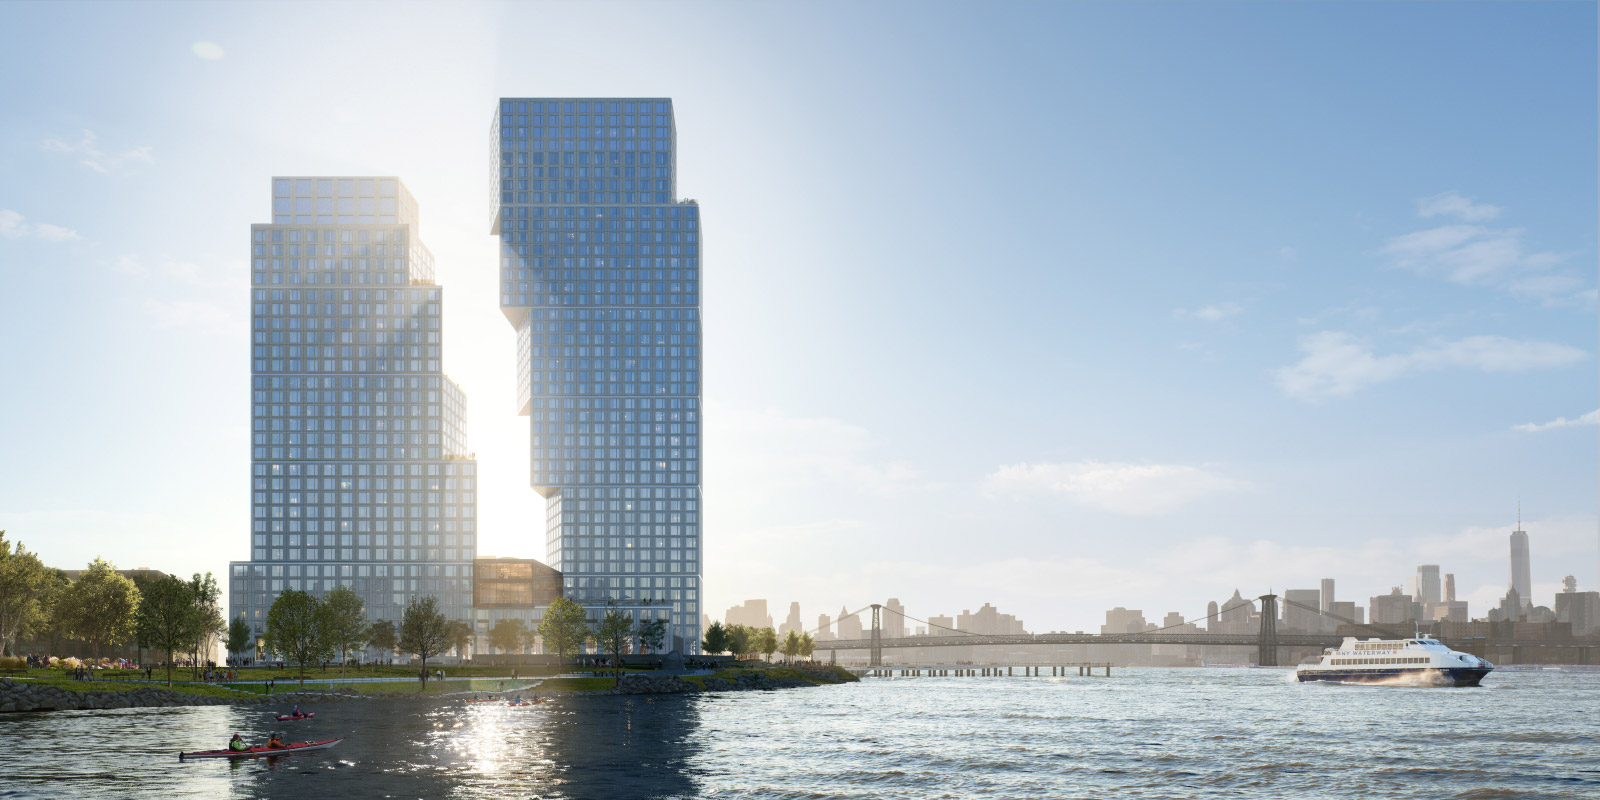 Rendering of two waterfront towers